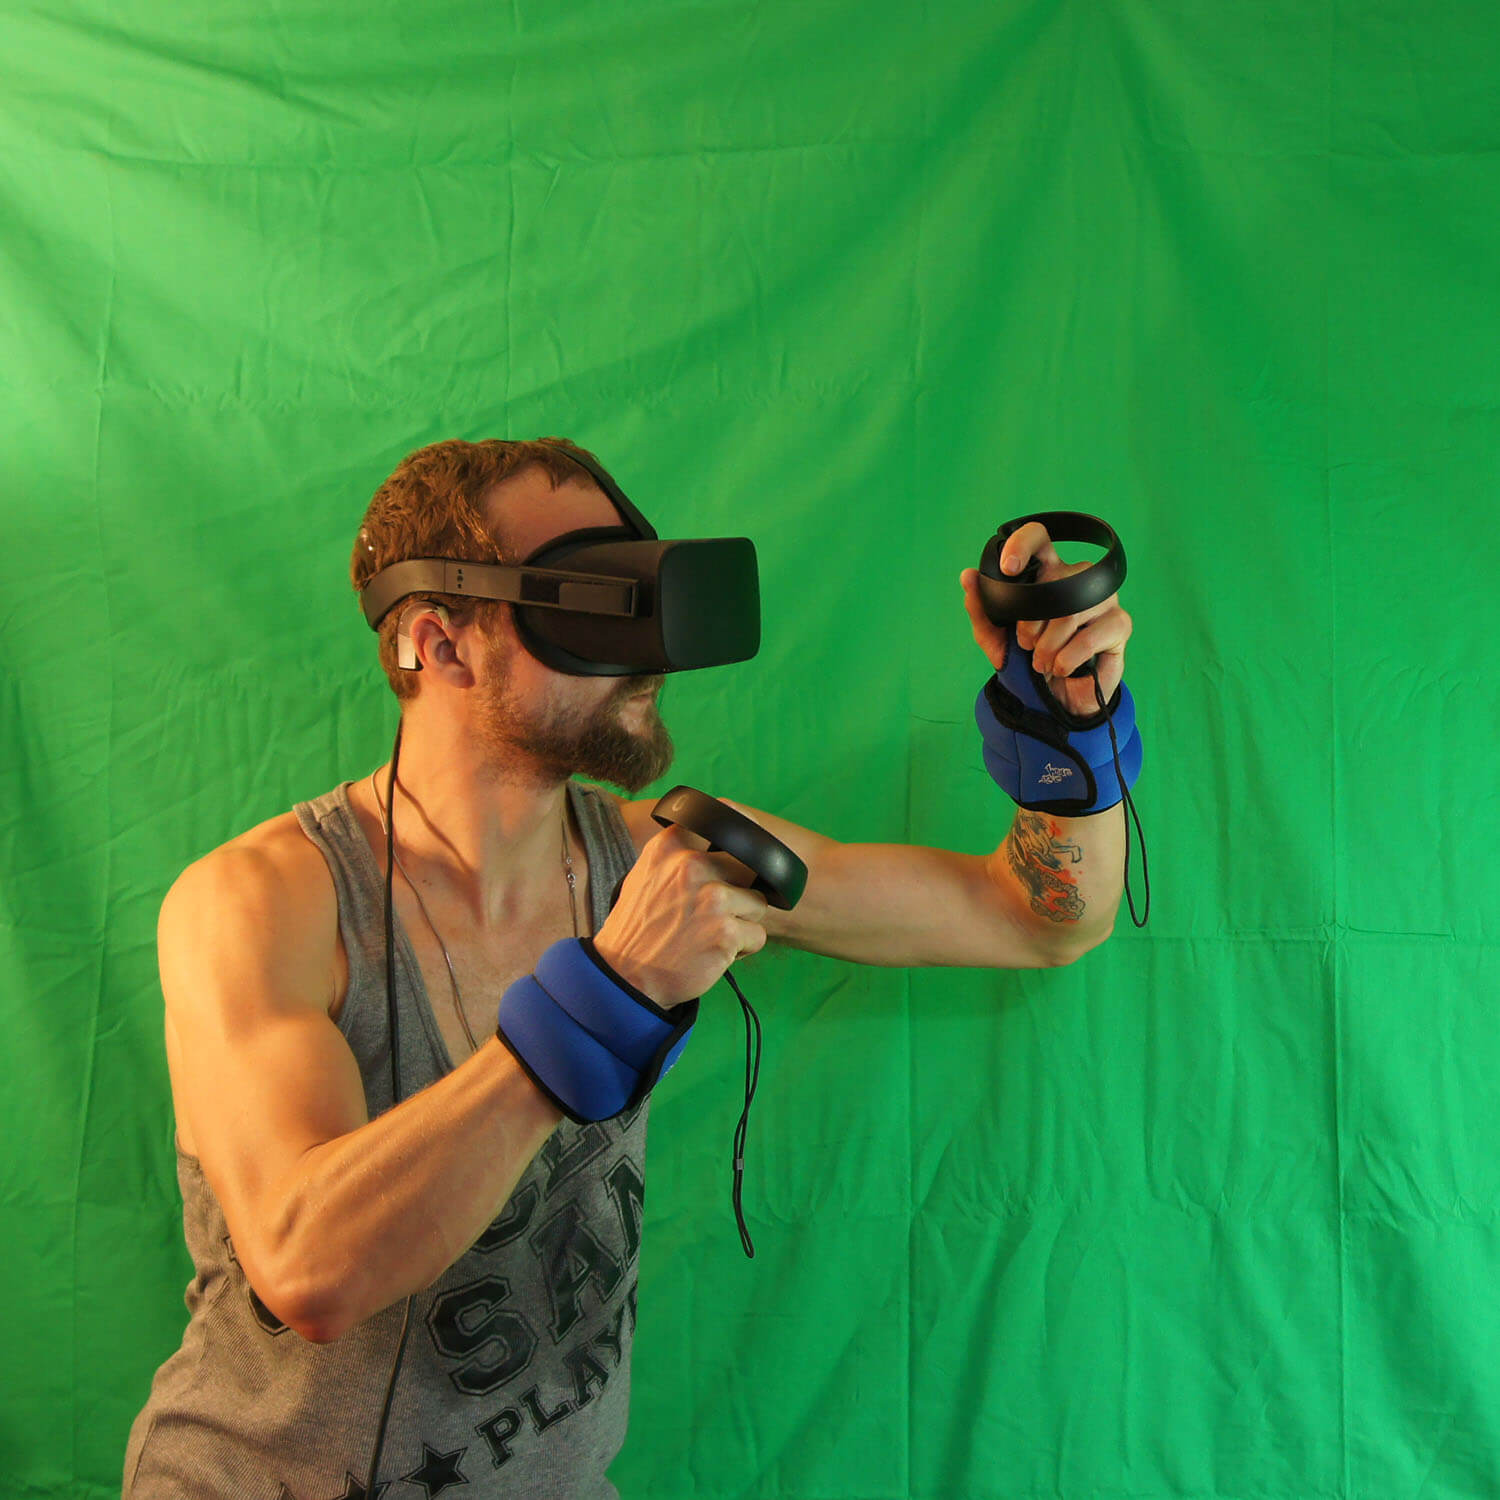 Eric Giessmann experimenting with Virtual Reality techniques.